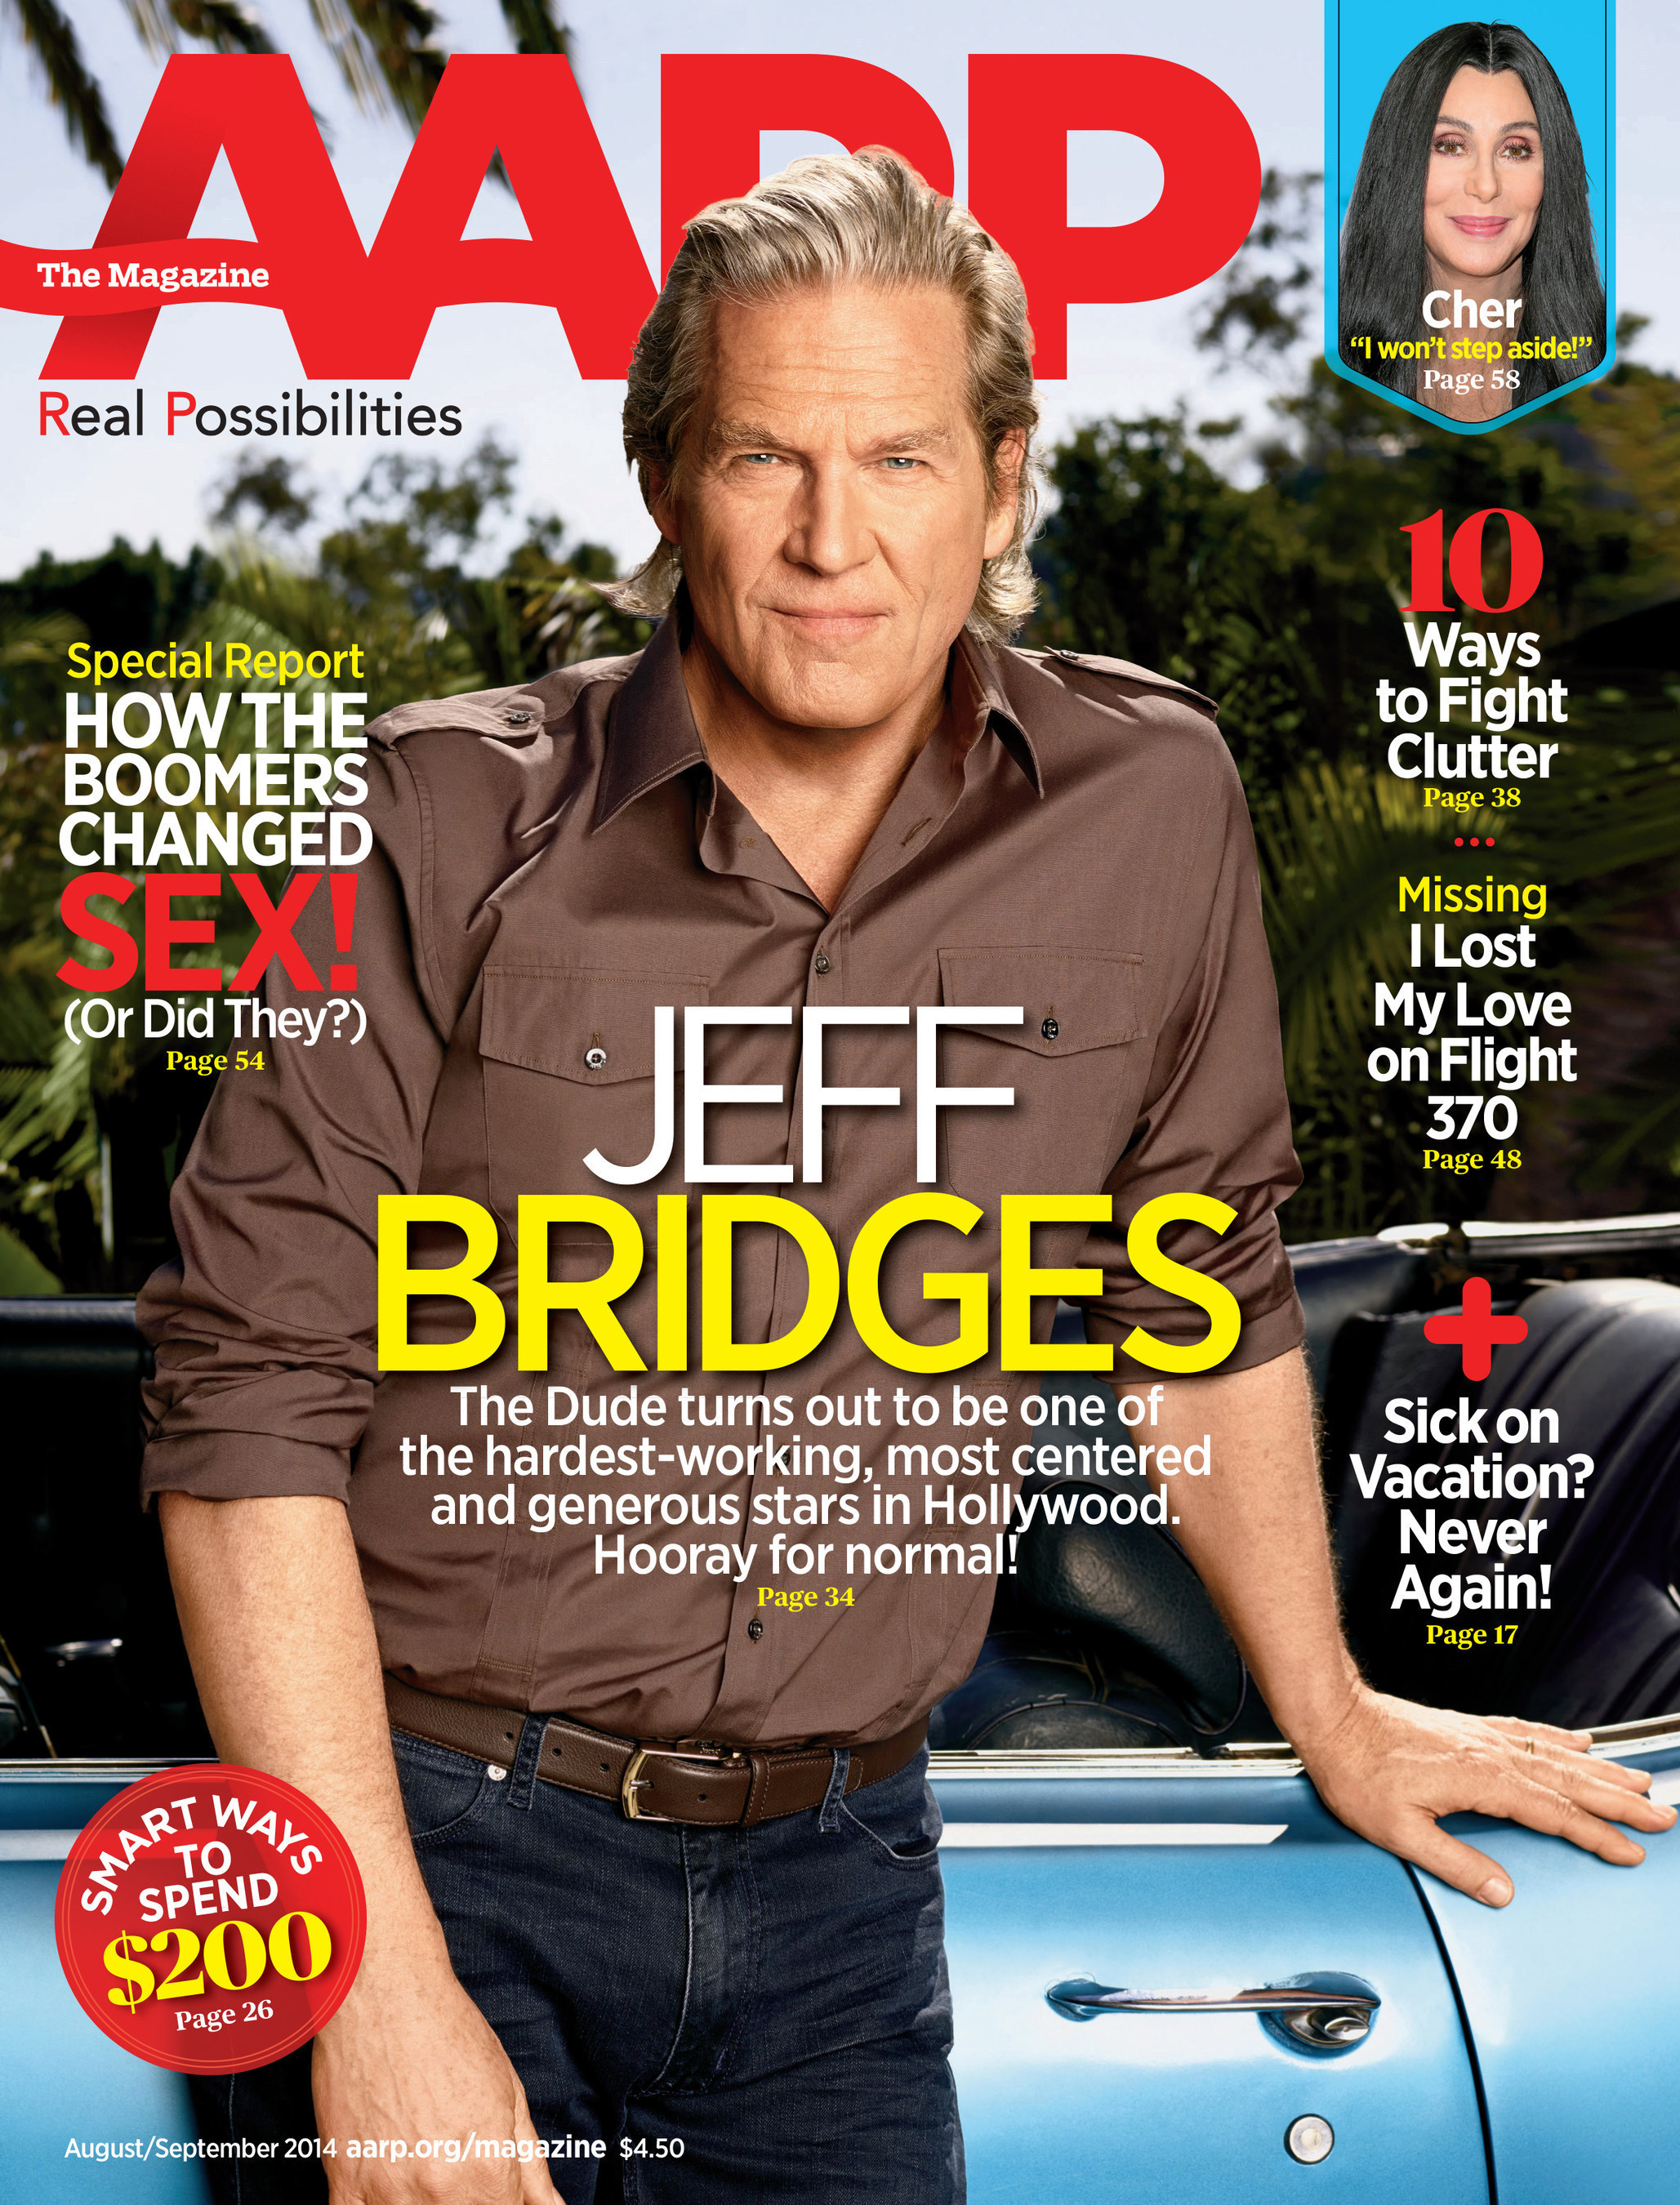 Jeff Bridges on the cover of AARP The Magazine. (PRNewsFoto/AARP)